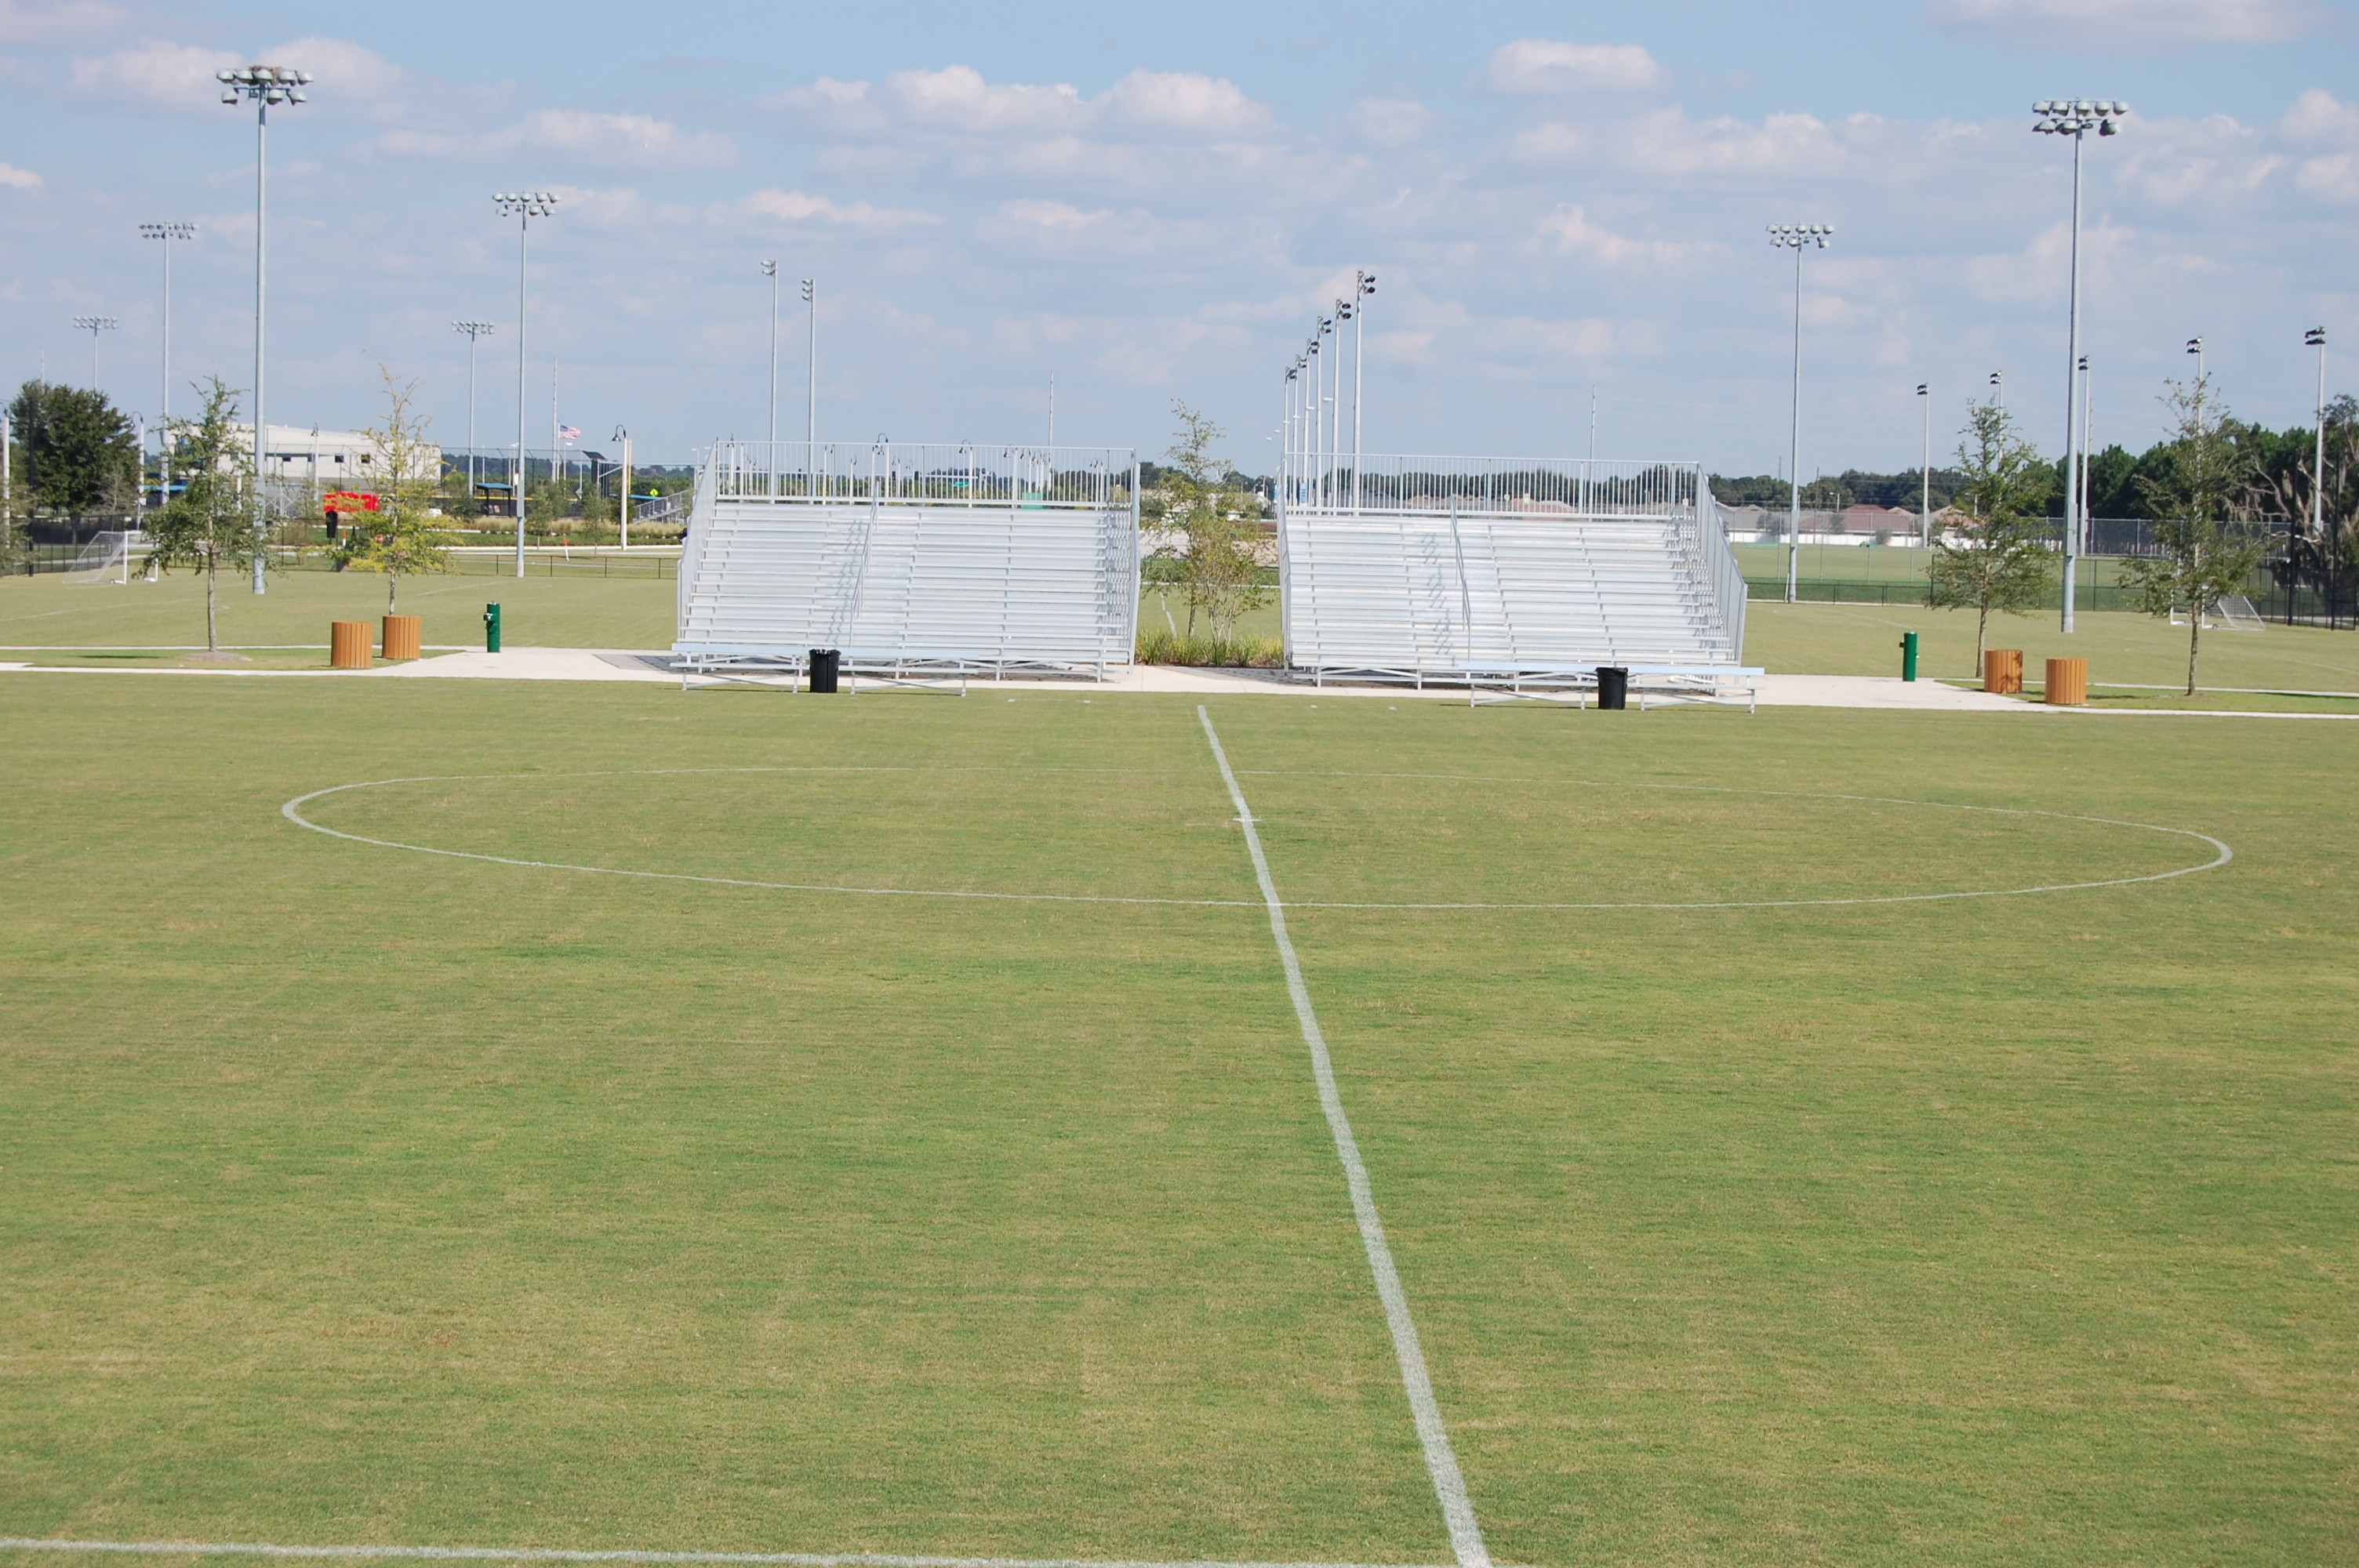 Stands along a soccer field at the Lake Myrtle Sports Park